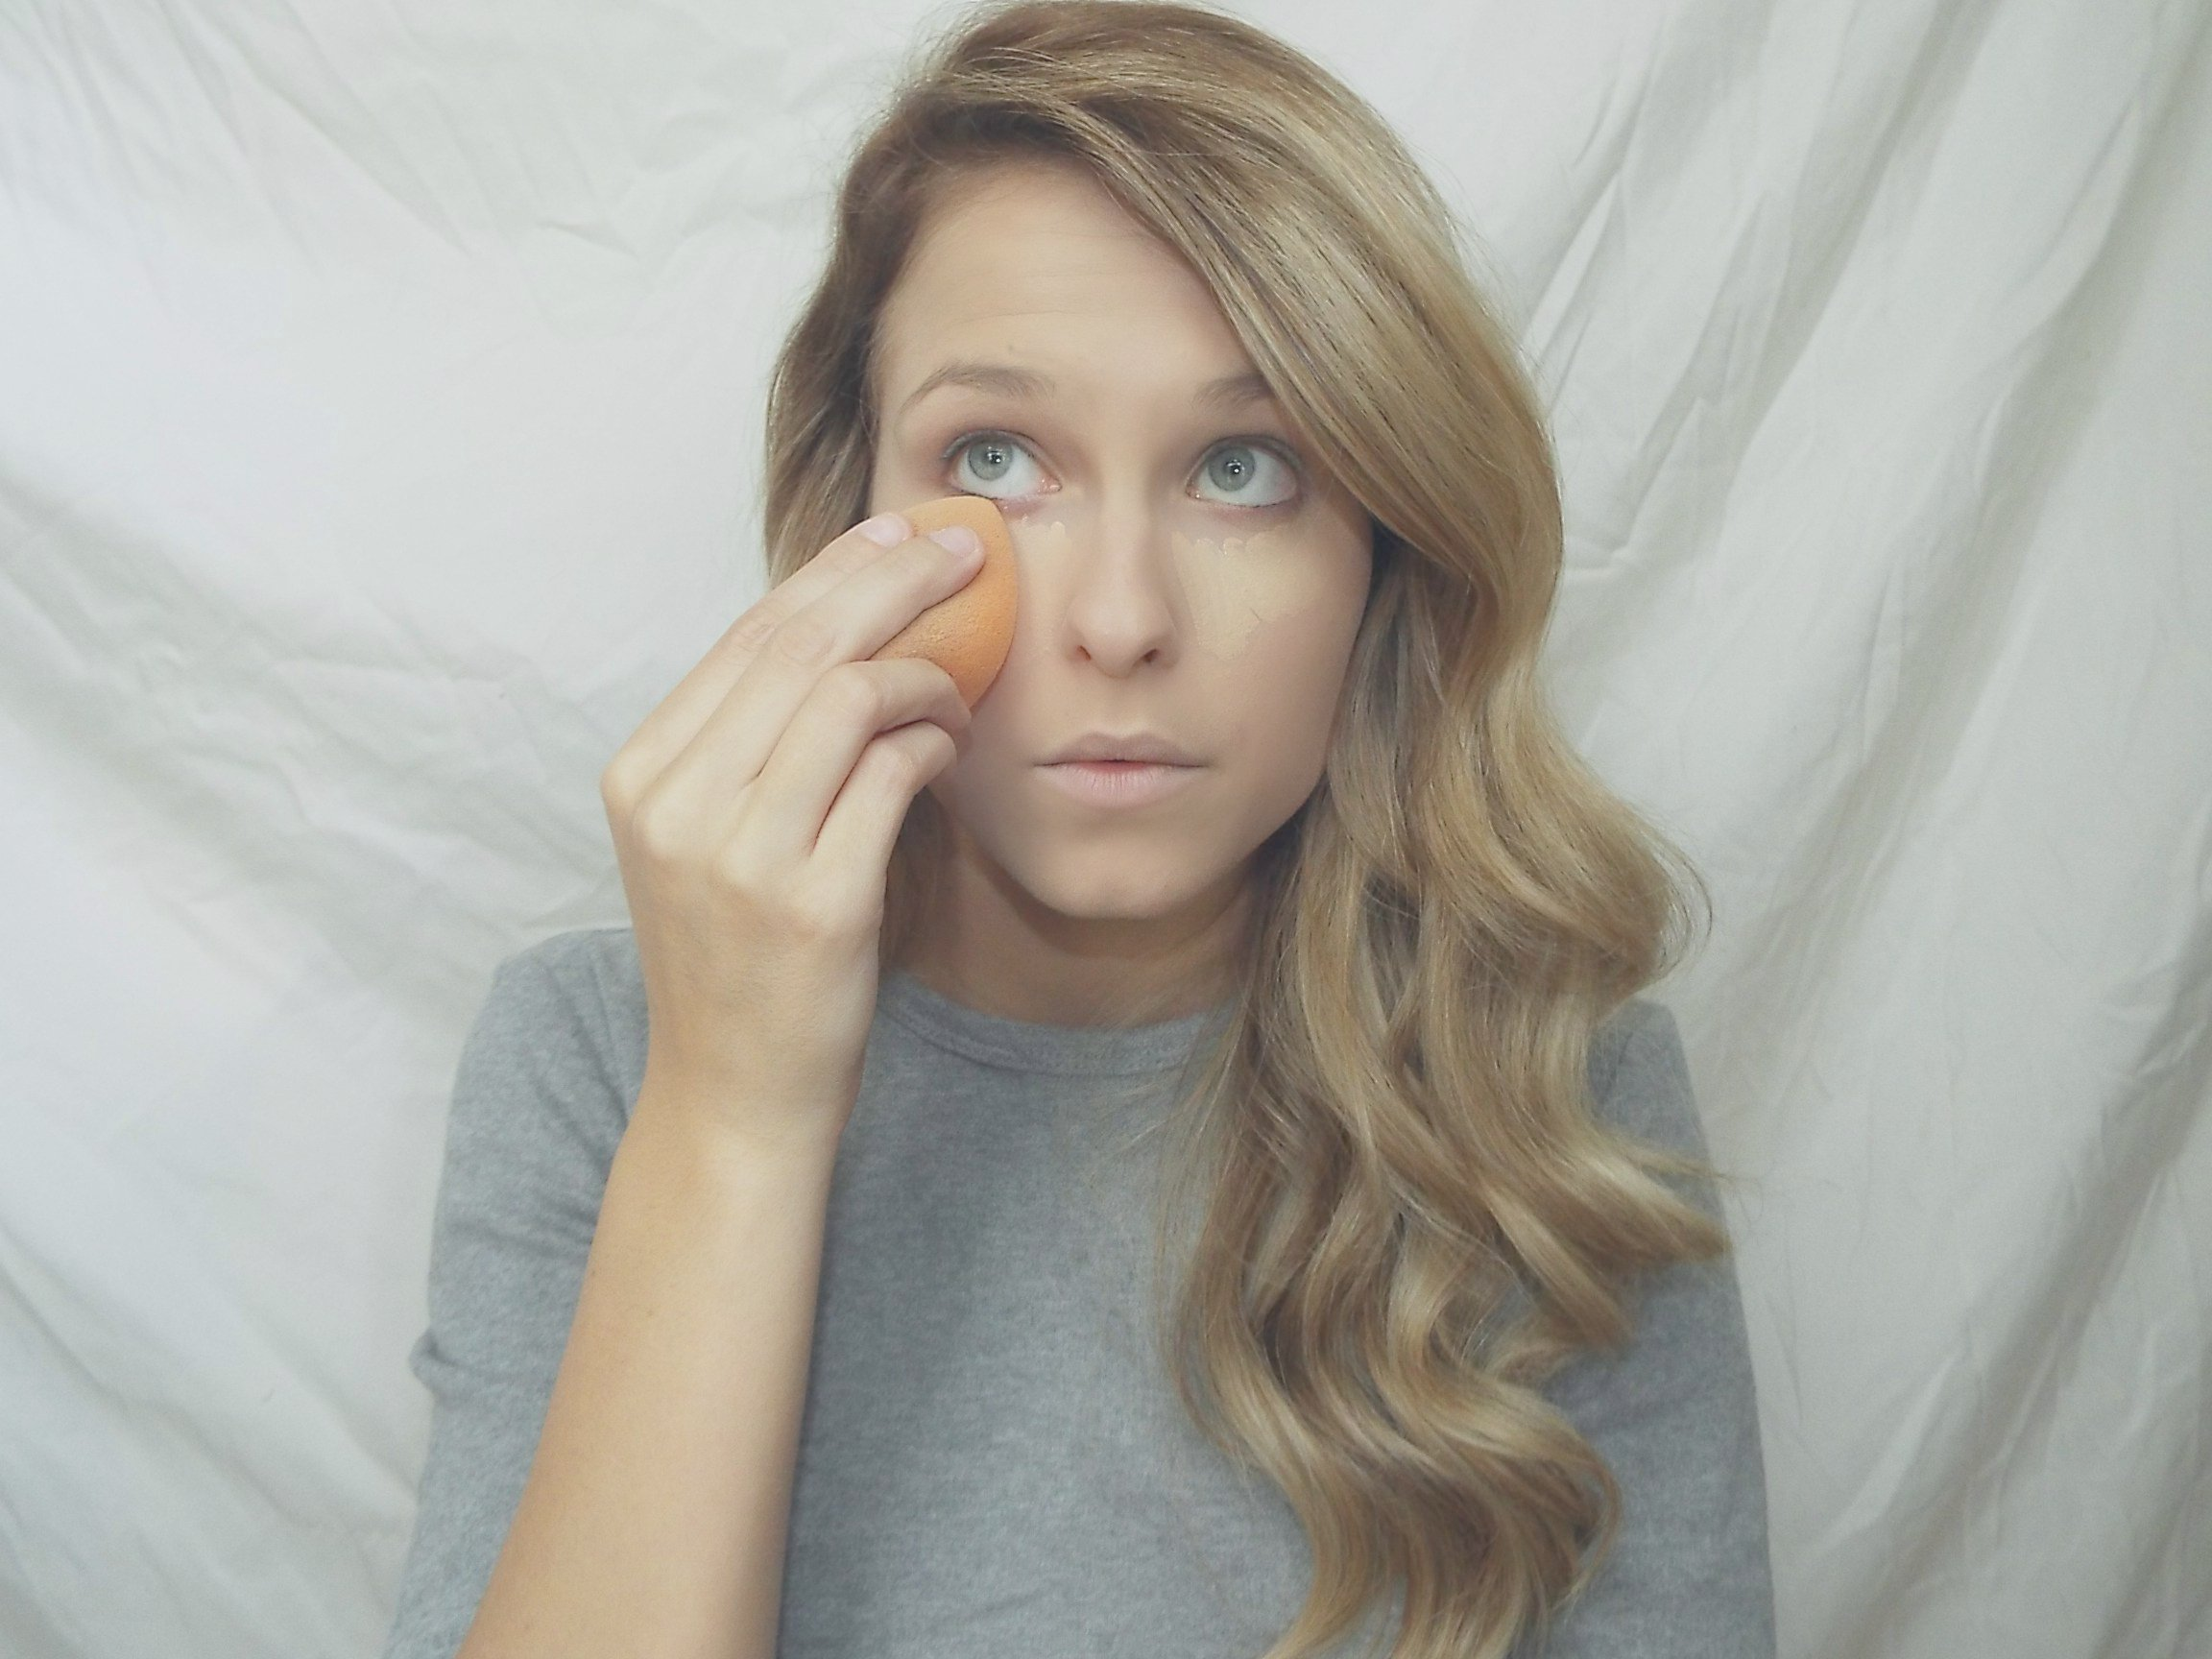 Makeup tutorial simply bethany i then take my real techniques sponge and blend out the concealer dont make any swiping motions just stick to dabbing i usually blend it out all the way baditri Choice Image